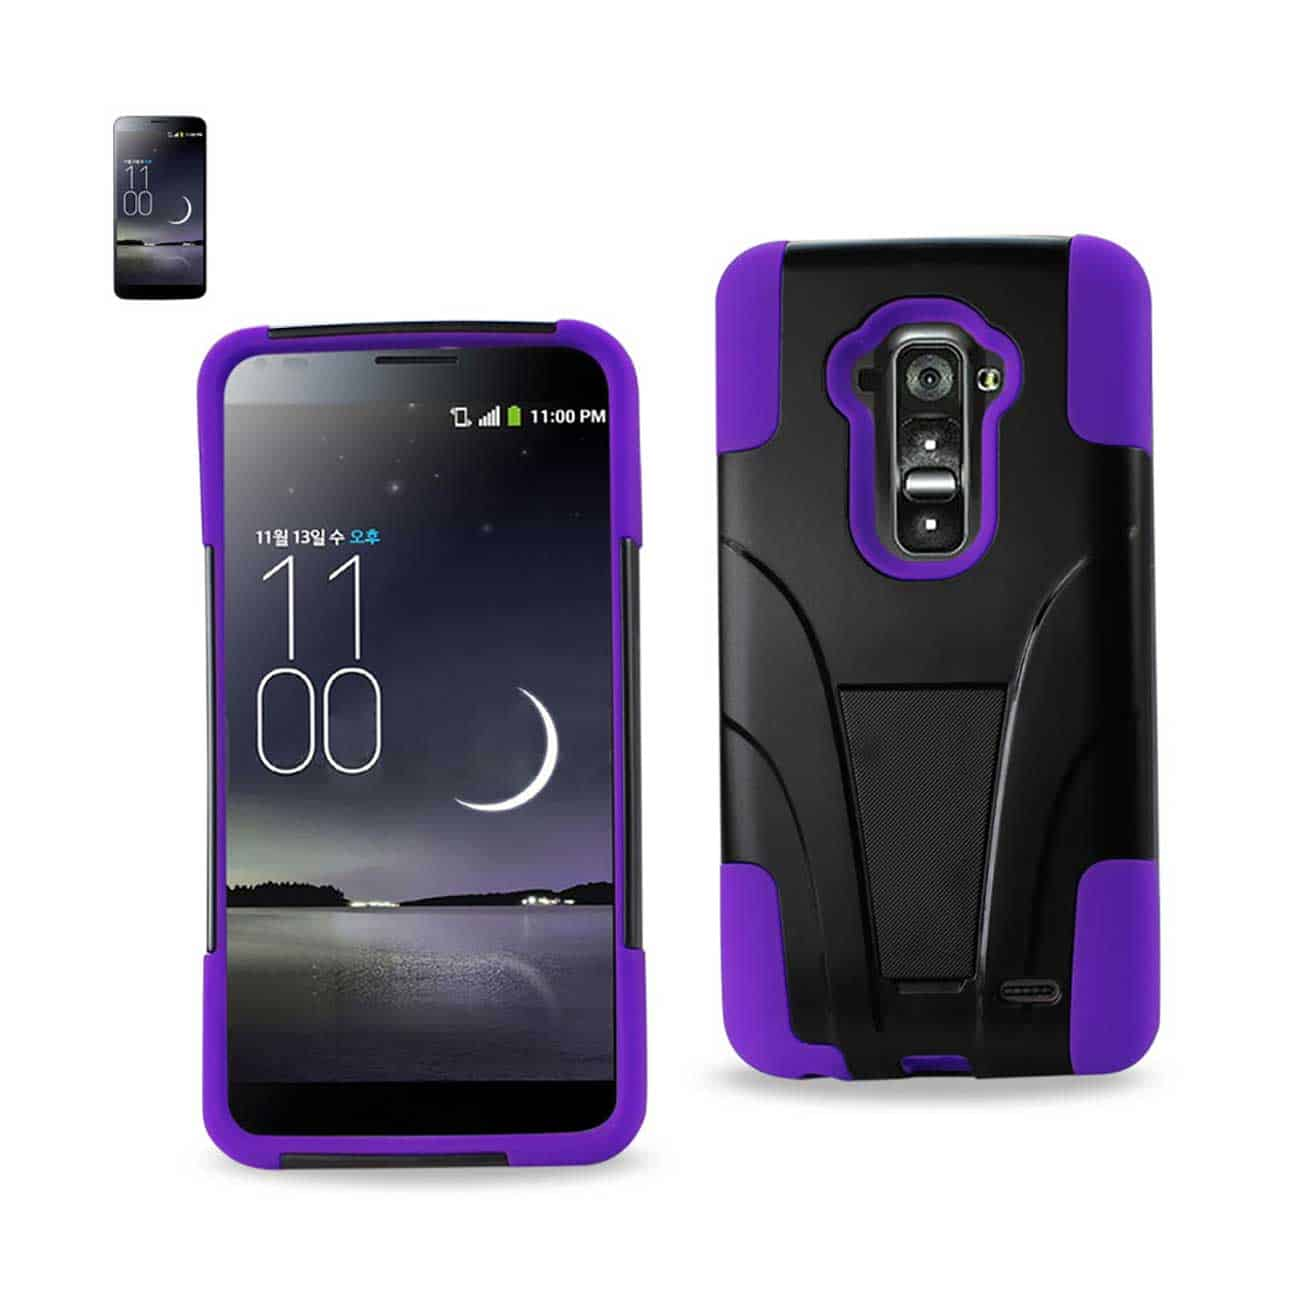 LG G FLEX HYBRID HEAVY DUTY CASE WITH KICKSTAND IN PURPLE BLACK